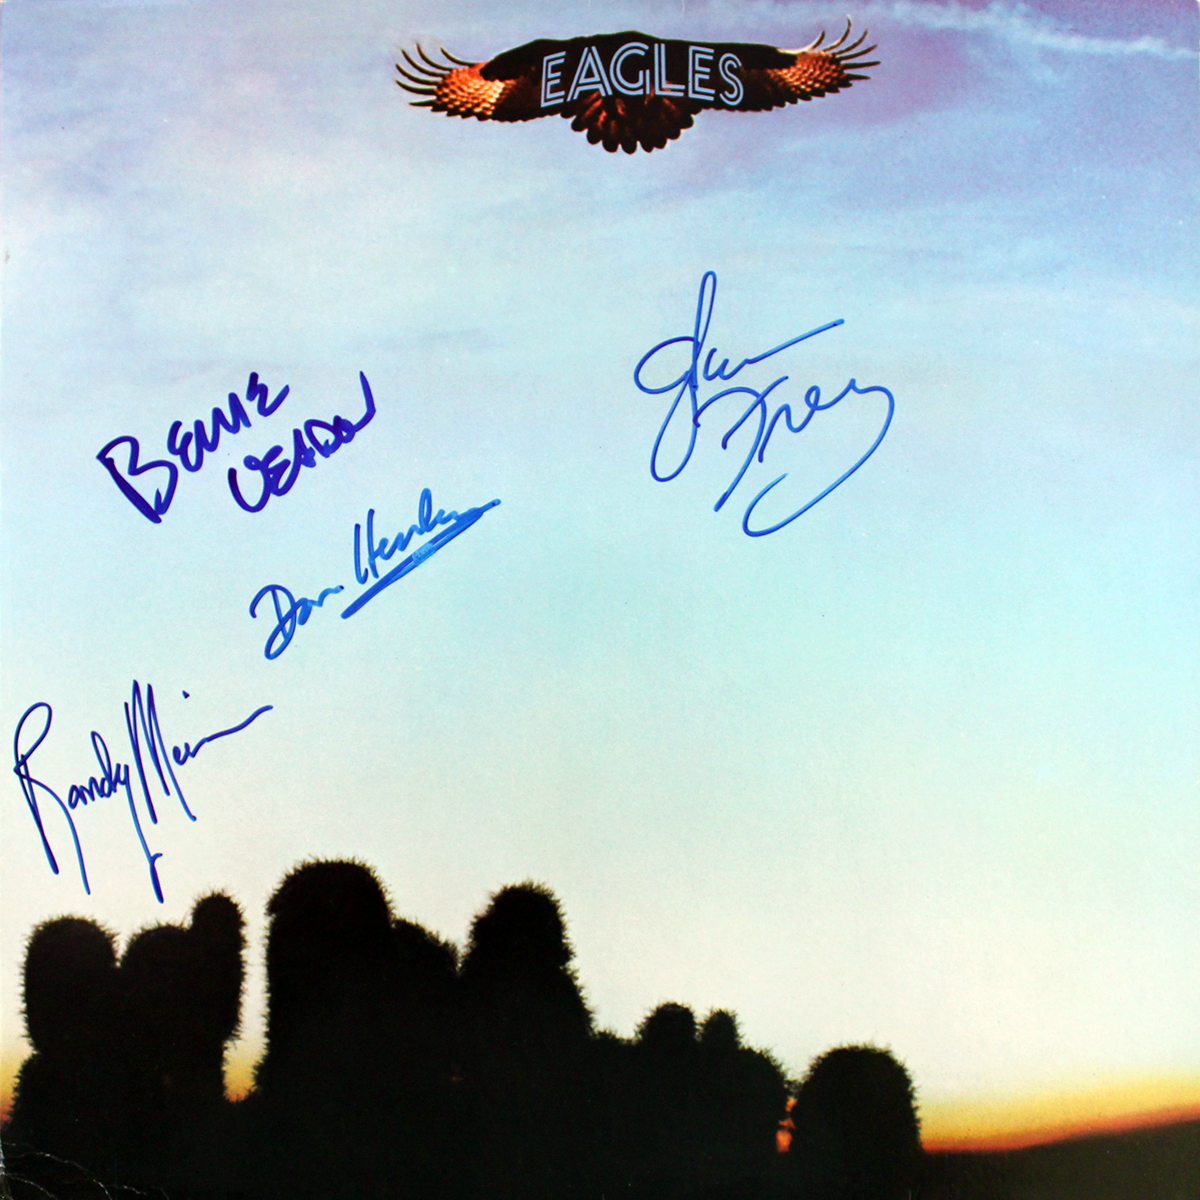 Eagles LP #3